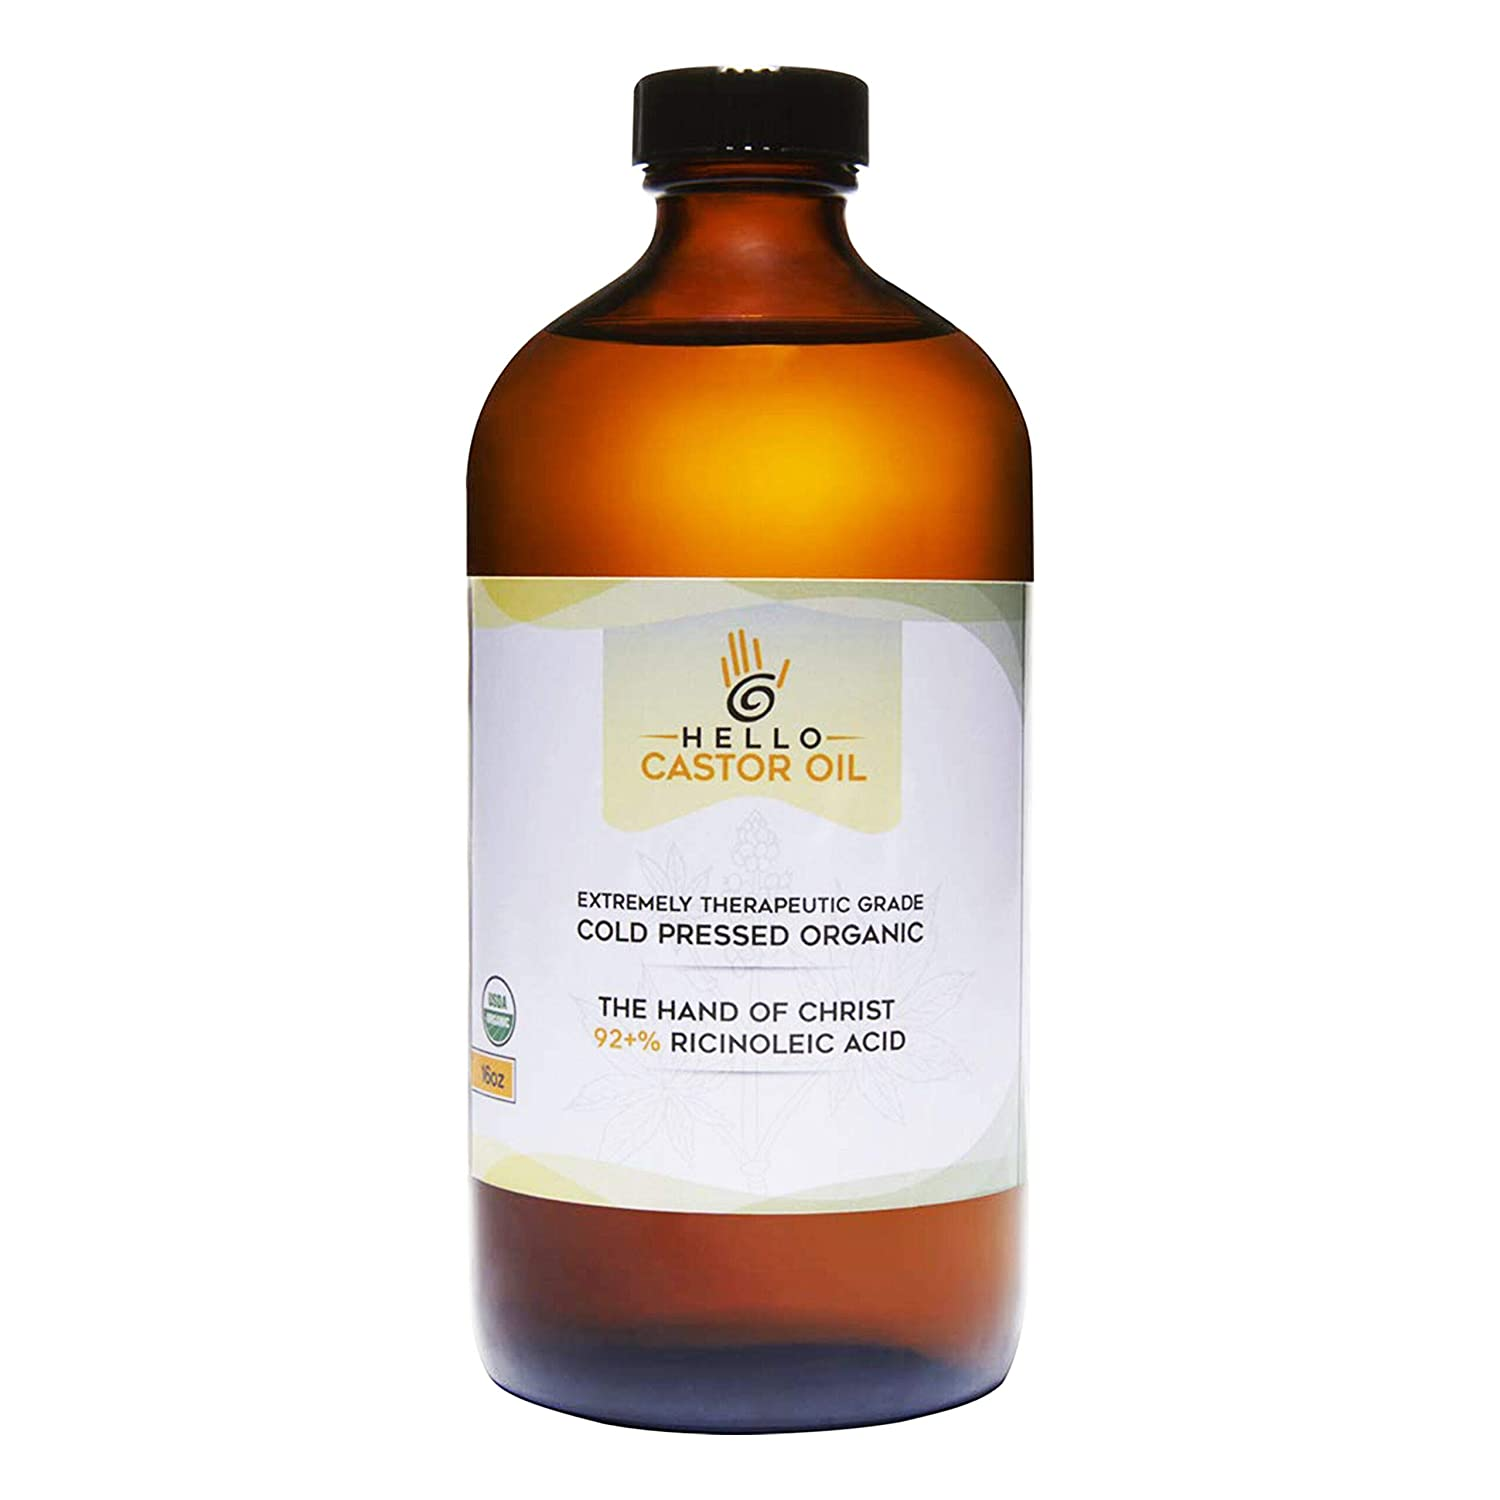 Hello Castor Oil USDA Certified Organic Glass Bottle Pure Cold-Pressed 100% Natural Virgin Castor Oil Moisturizing for Skin Hair Growth Product for Eyelashes Food Grade Hexane & BPA Free (16 ounces)